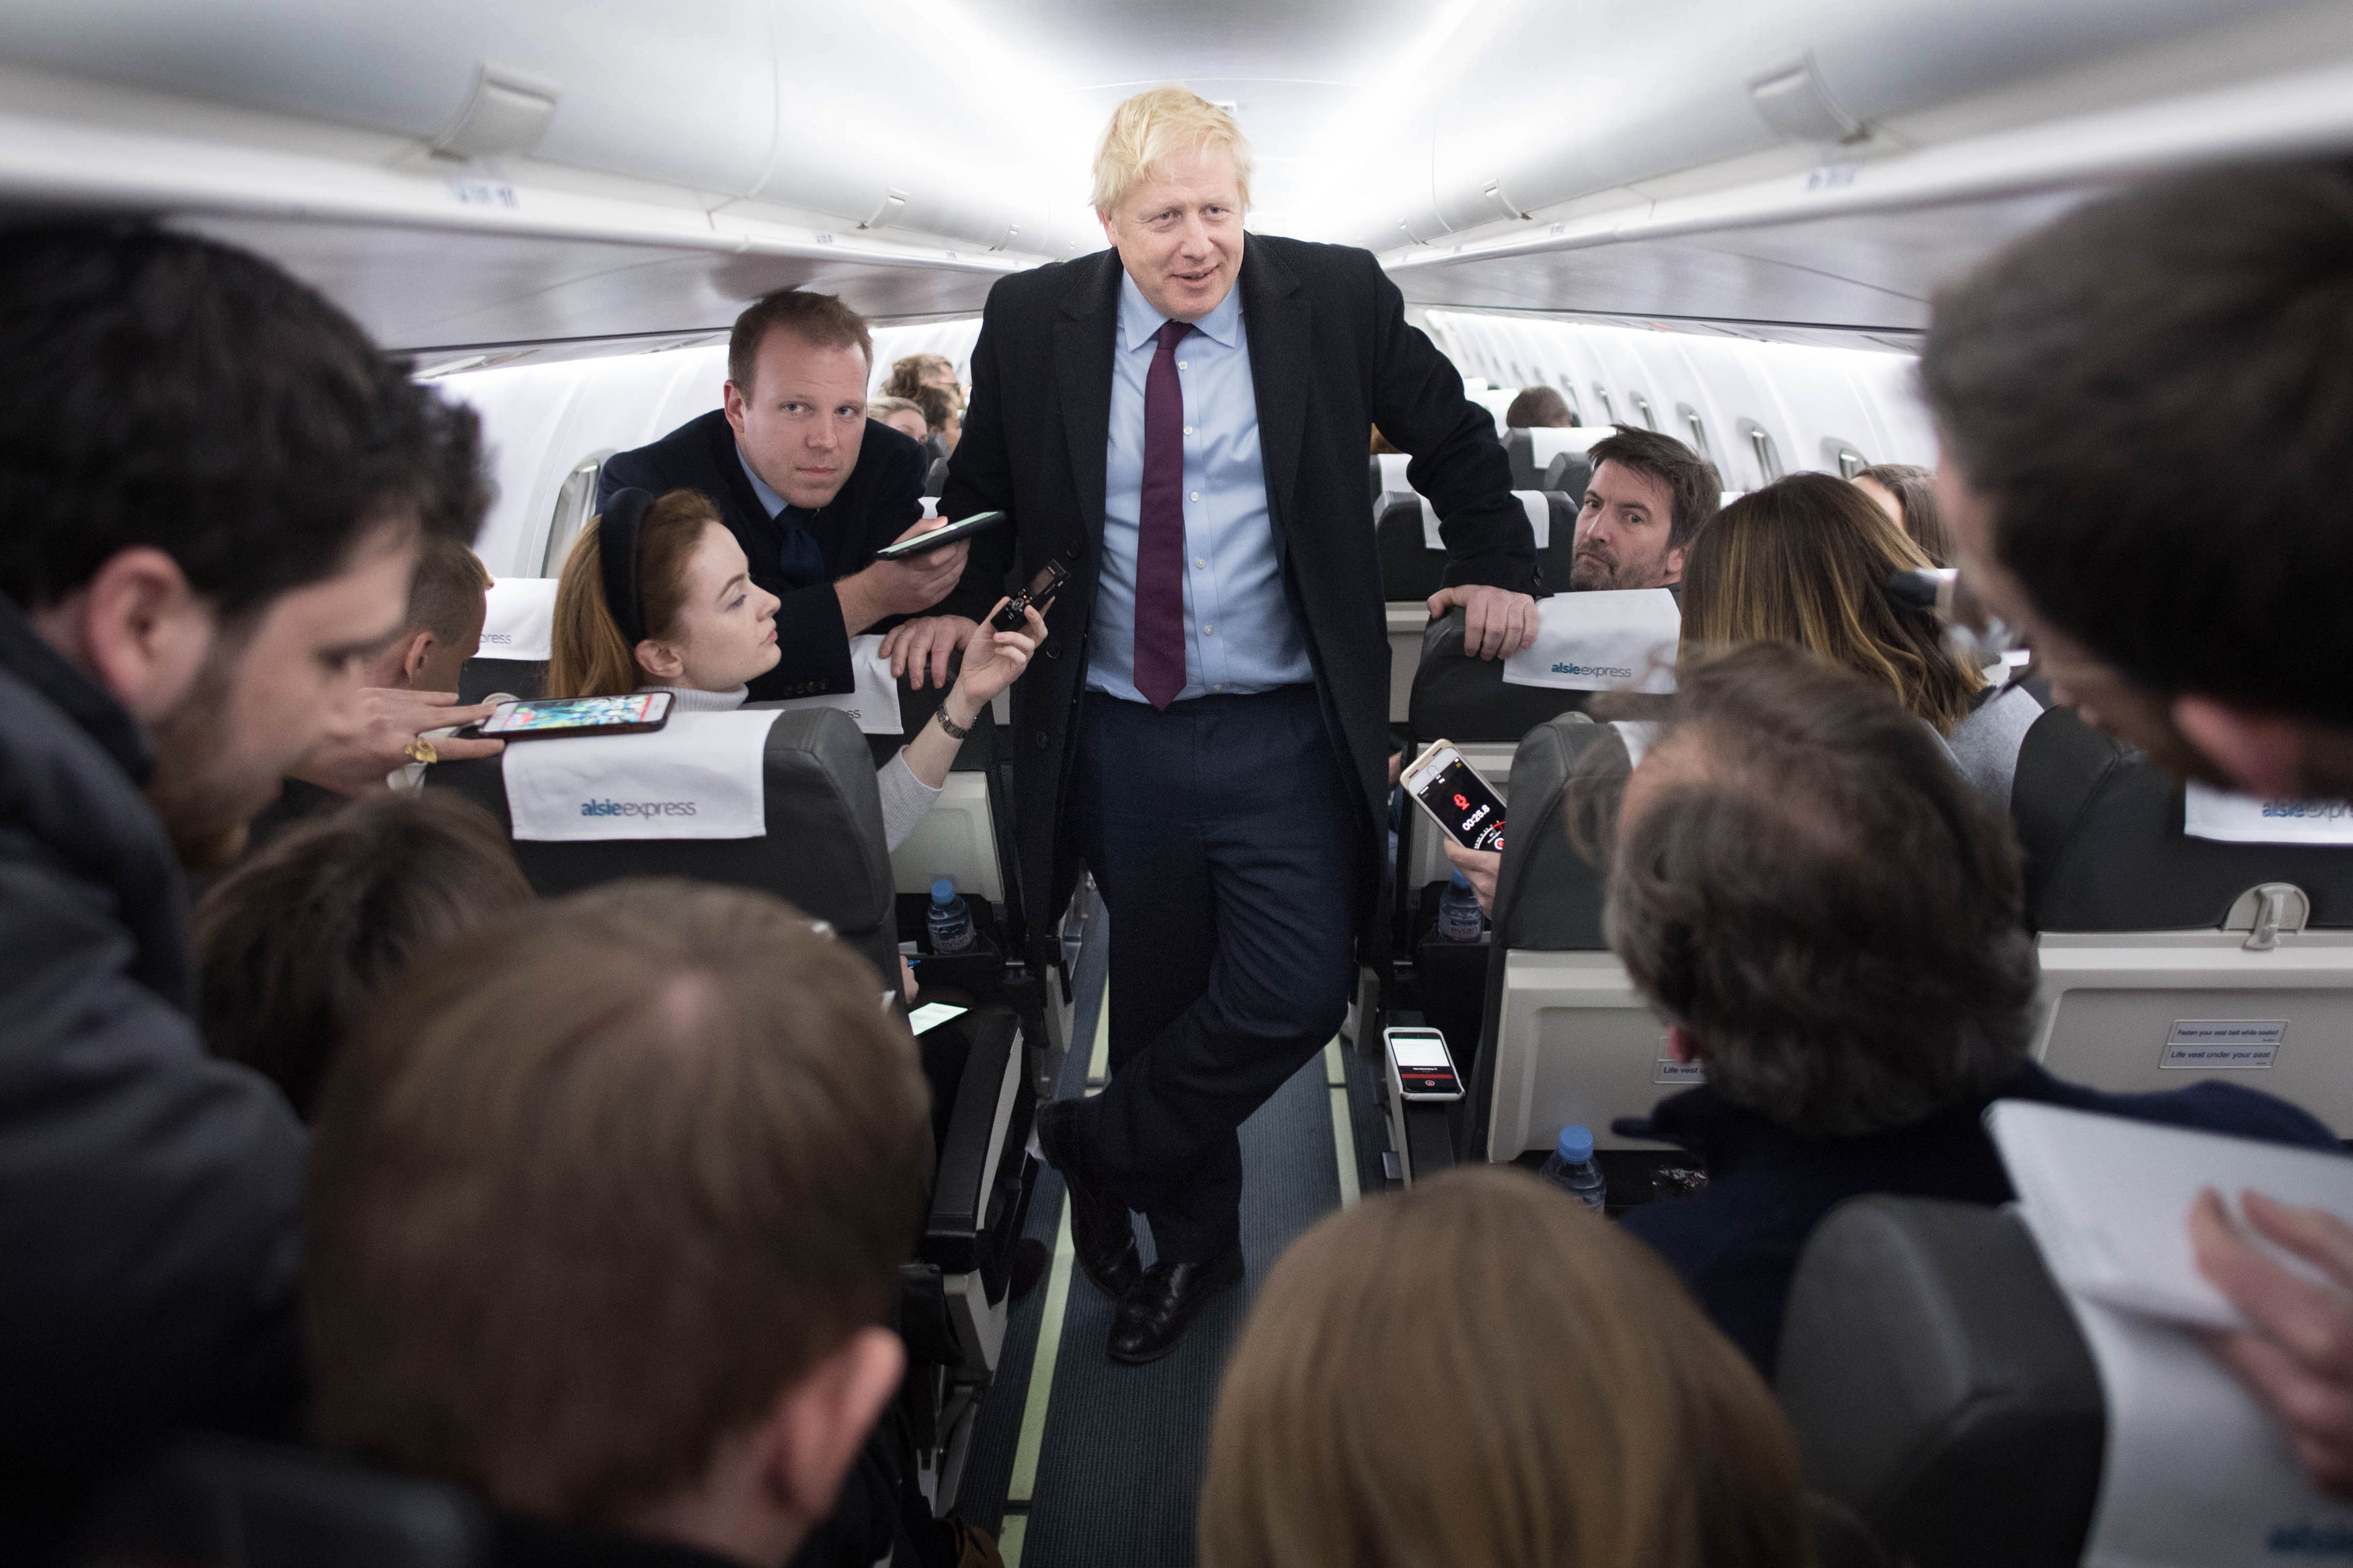 Prime Minister Boris Johnson speaks to the press on board his campaign plane whilst travelling to Birmingham after a day of visits in Grimsby and the north east. PA Photo. Picture date: Monday December 9, 2019. See PA story POLITICS Election. Photo credit should read: Stefan Rousseau/PA Wire